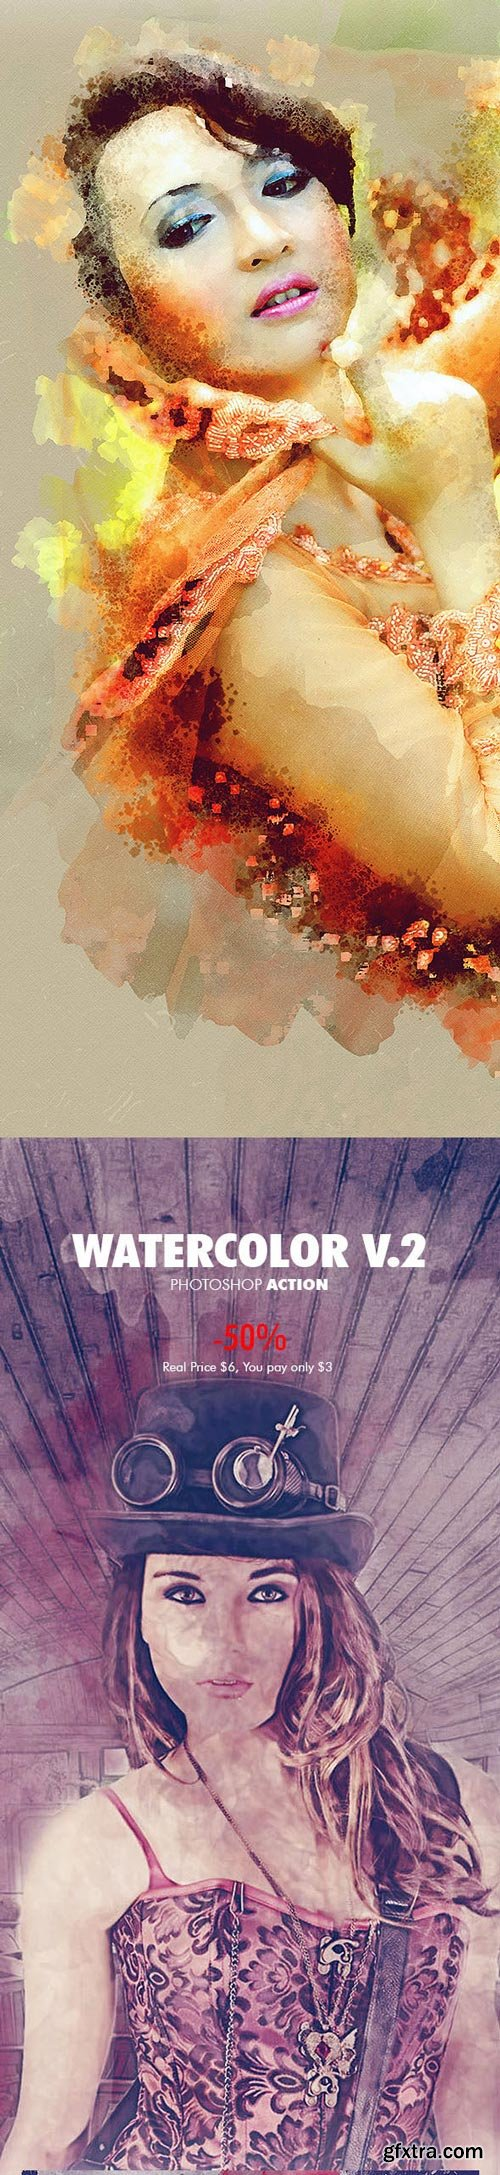 GraphicRiver - Watercolor - 4in1 Photoshop Actions Bundle V.1 - 18180095